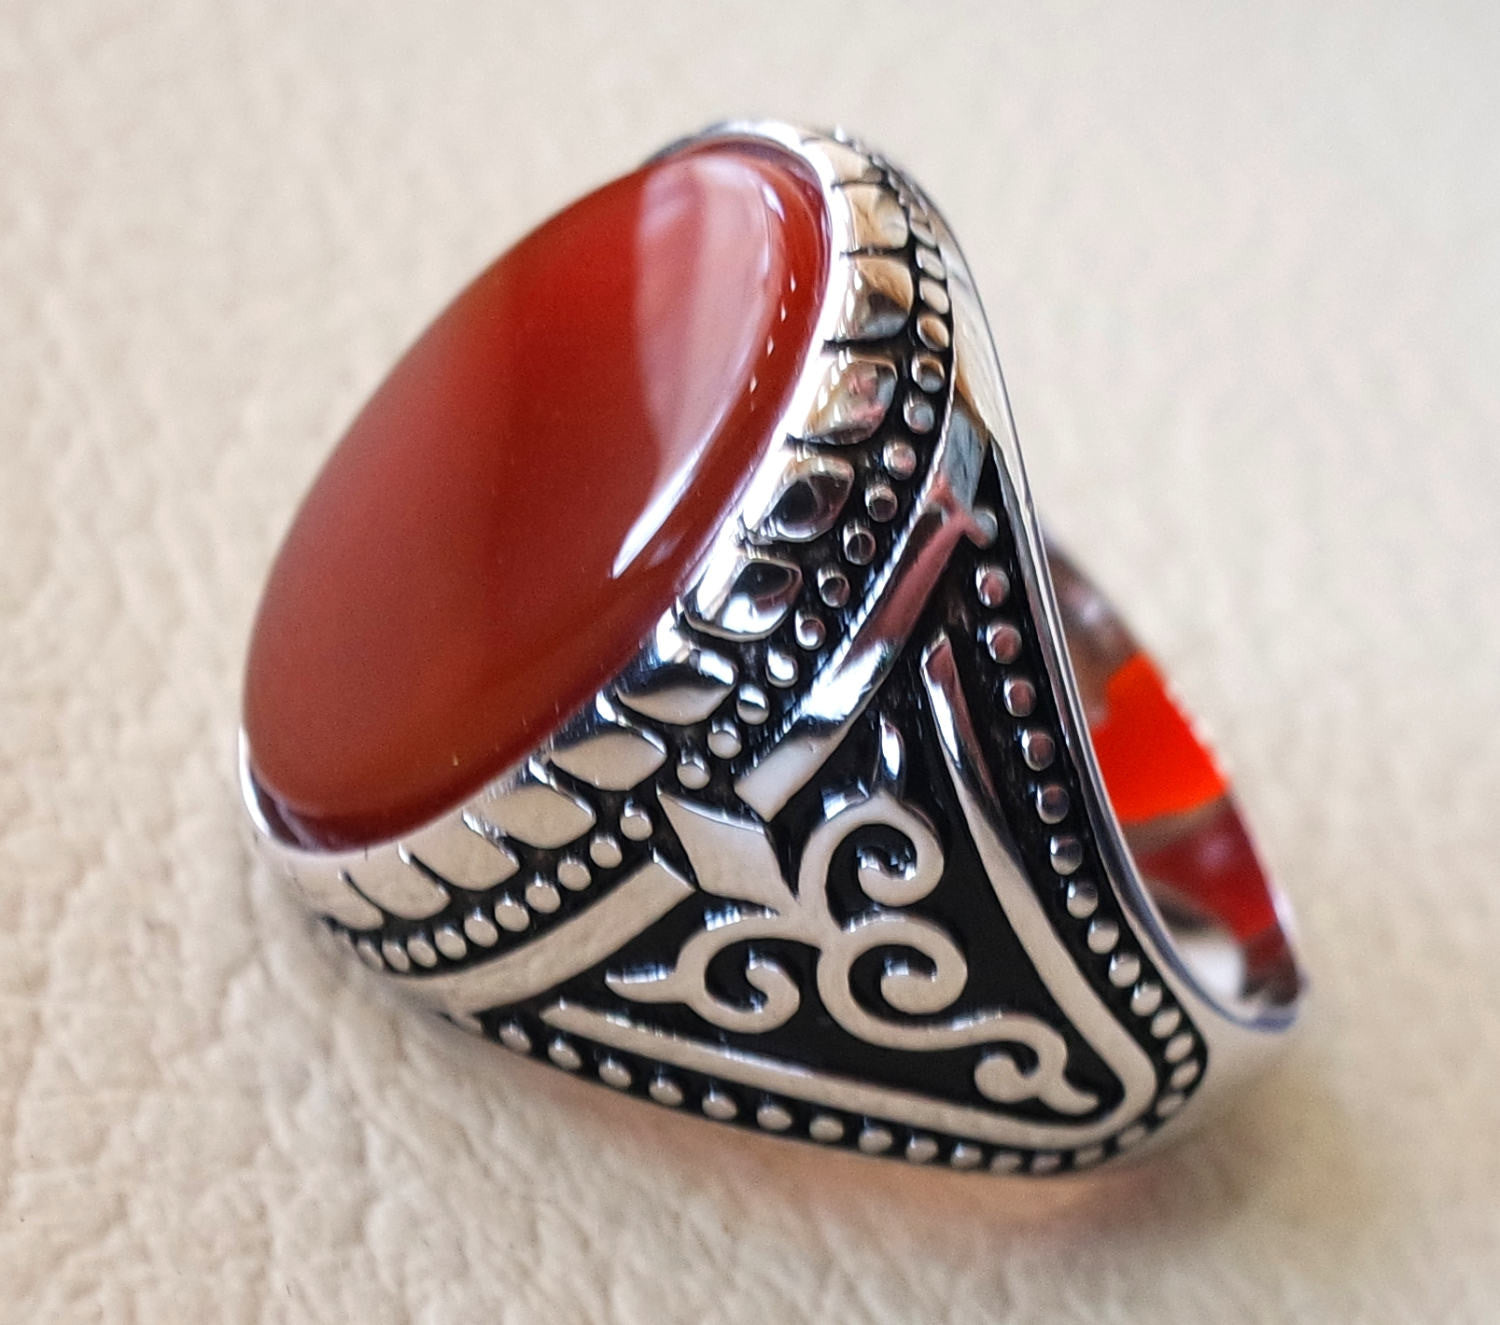 aqeeq natural flat agate carnelian semi precious stone oval red cabochon gem man ring sterling silver 925 arabic middle eastern turkey style